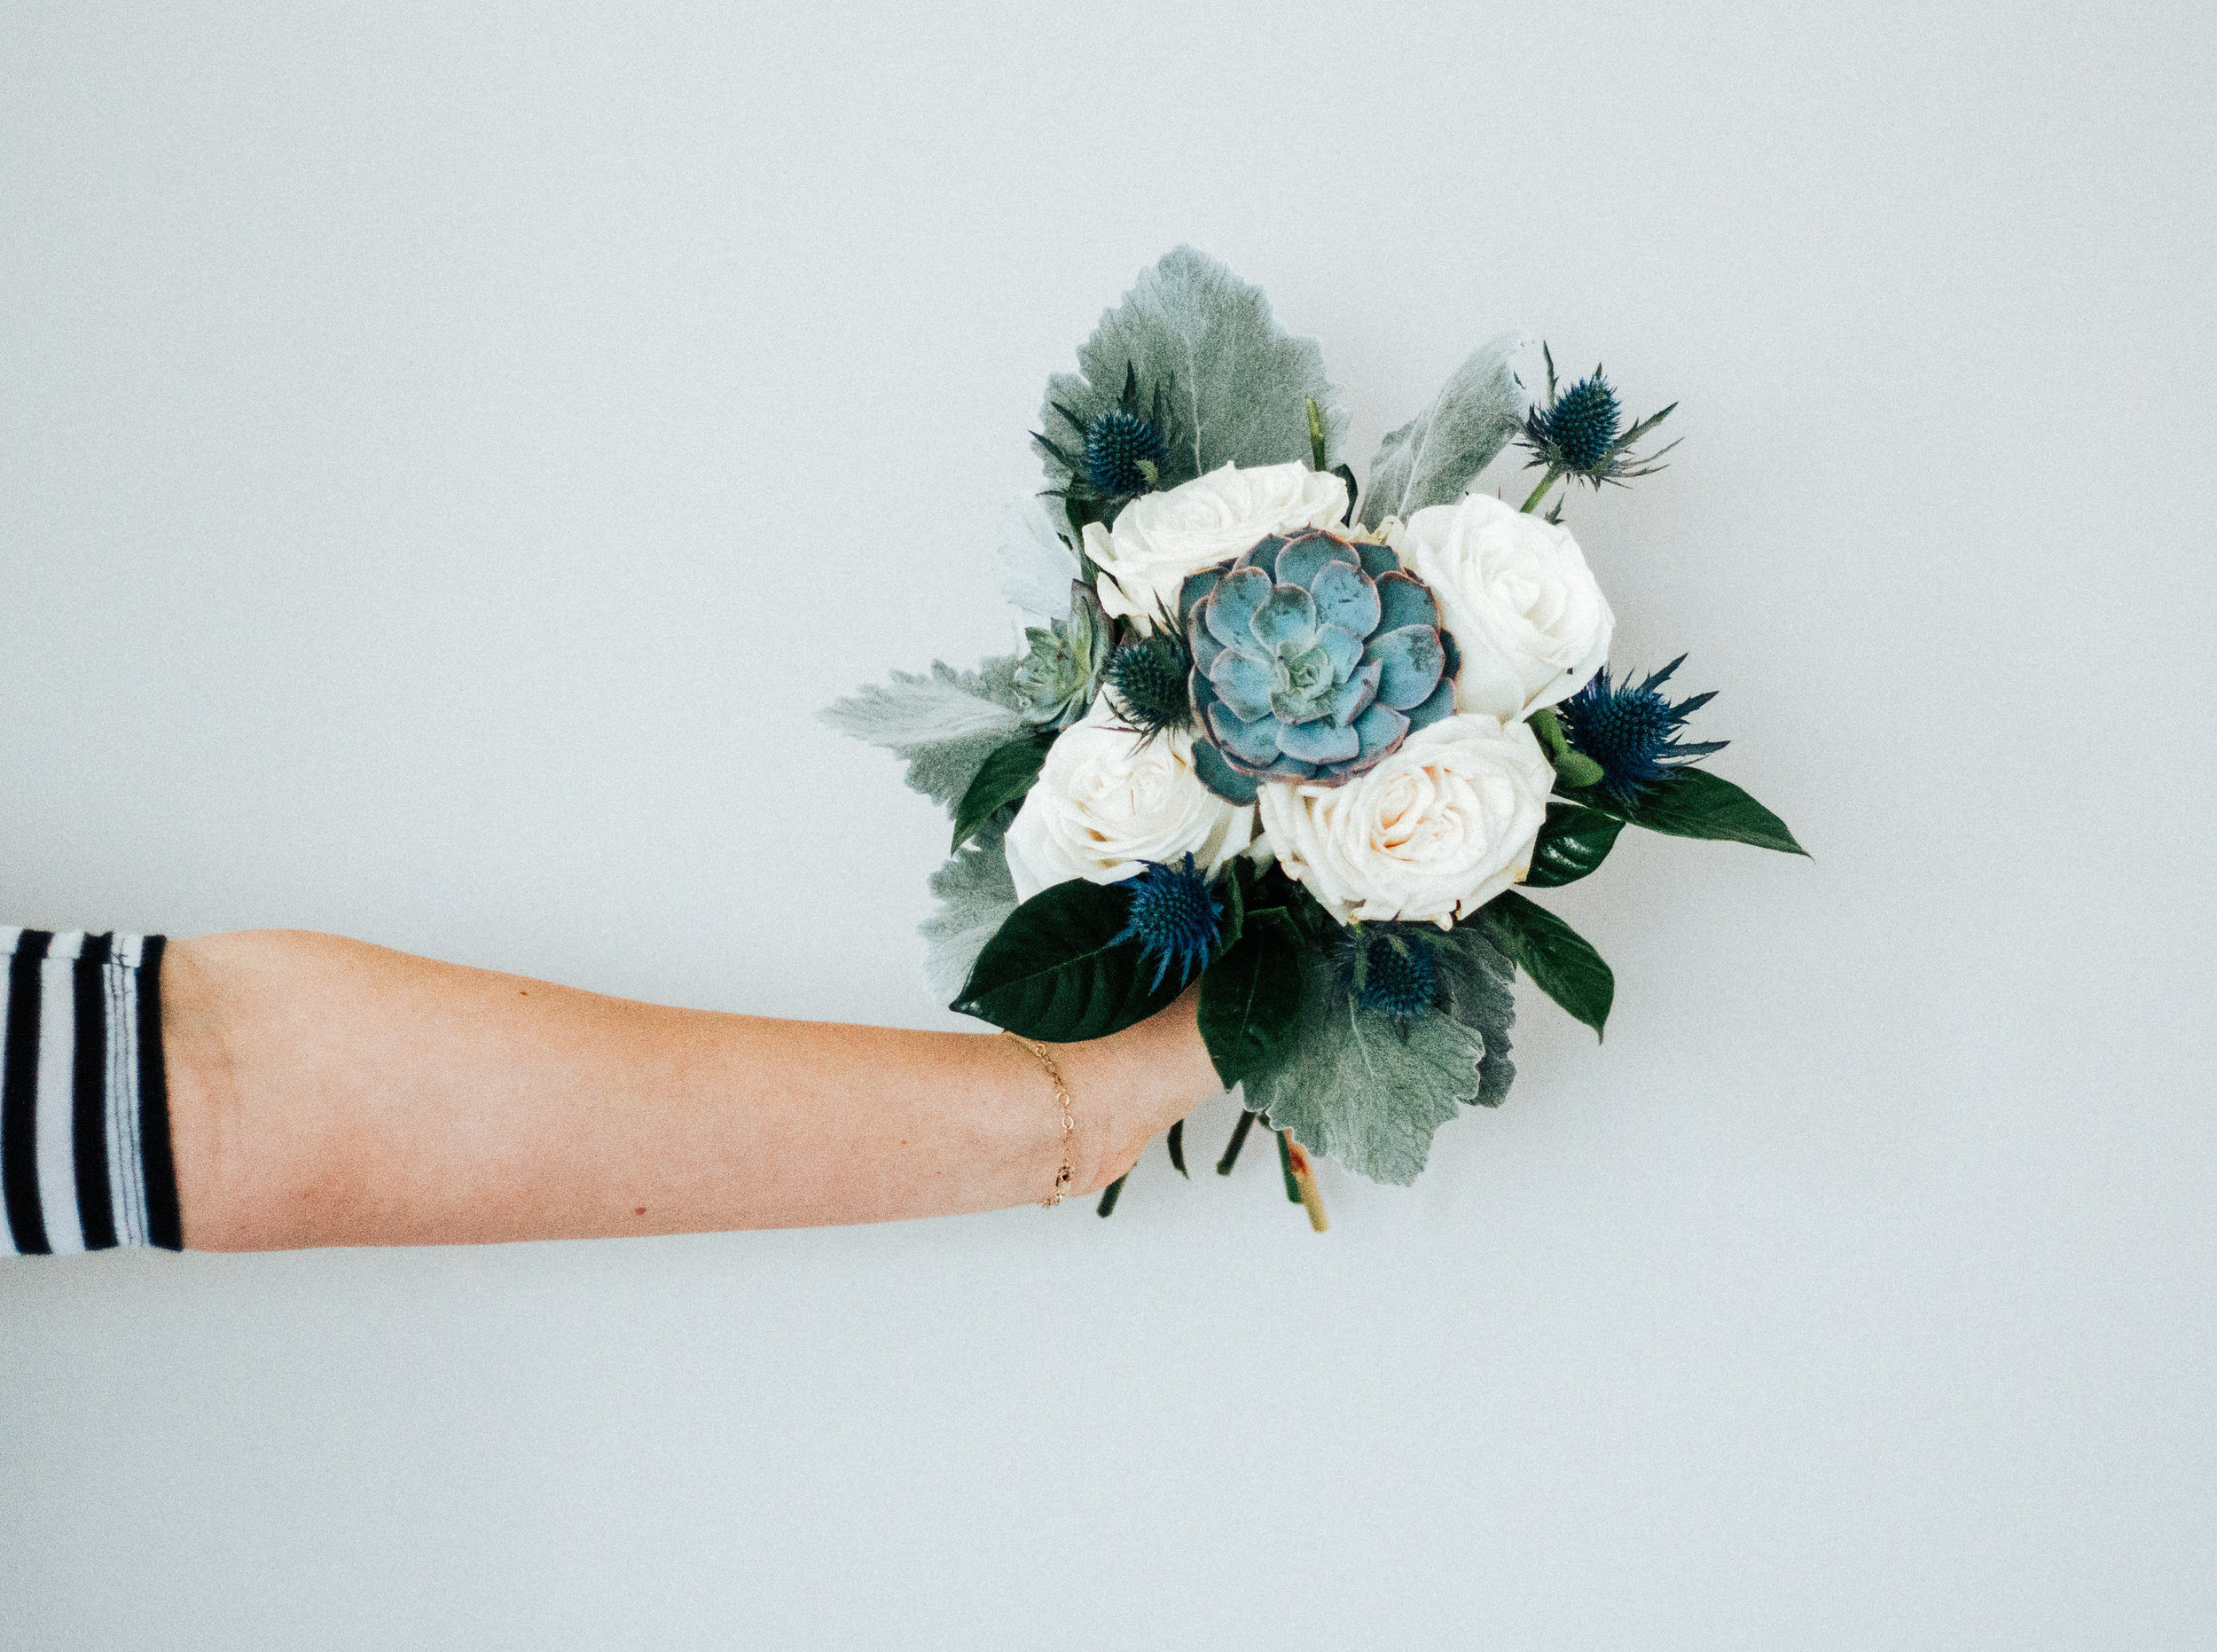 Love & Luster Floral Design Succulent Bridal Bouquet